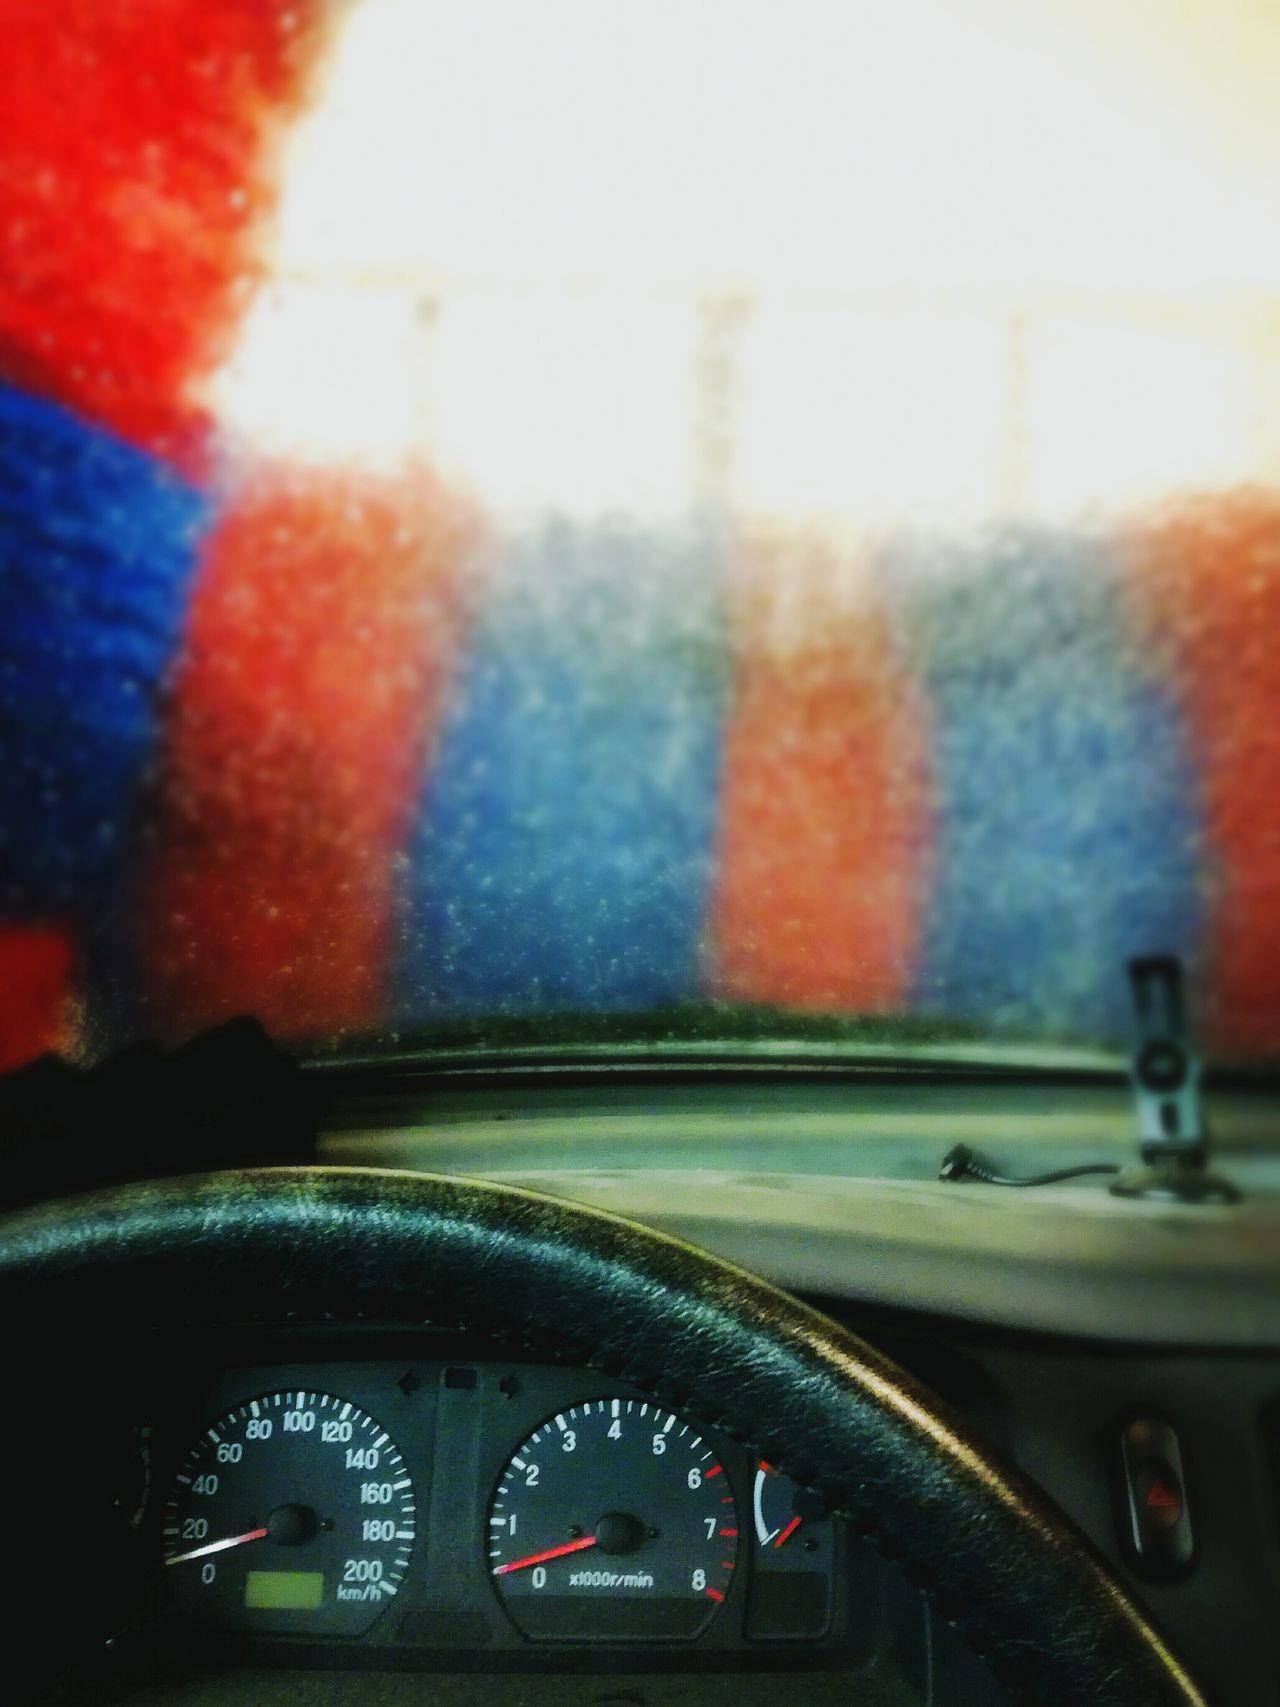 Car Interior Vehicle Interior Dashboard No People Technology Speedometer Close-up Window View Car Washing Red And Blue Steering Wheel Transportation In Car Selective Focus Brush Gauge Meters